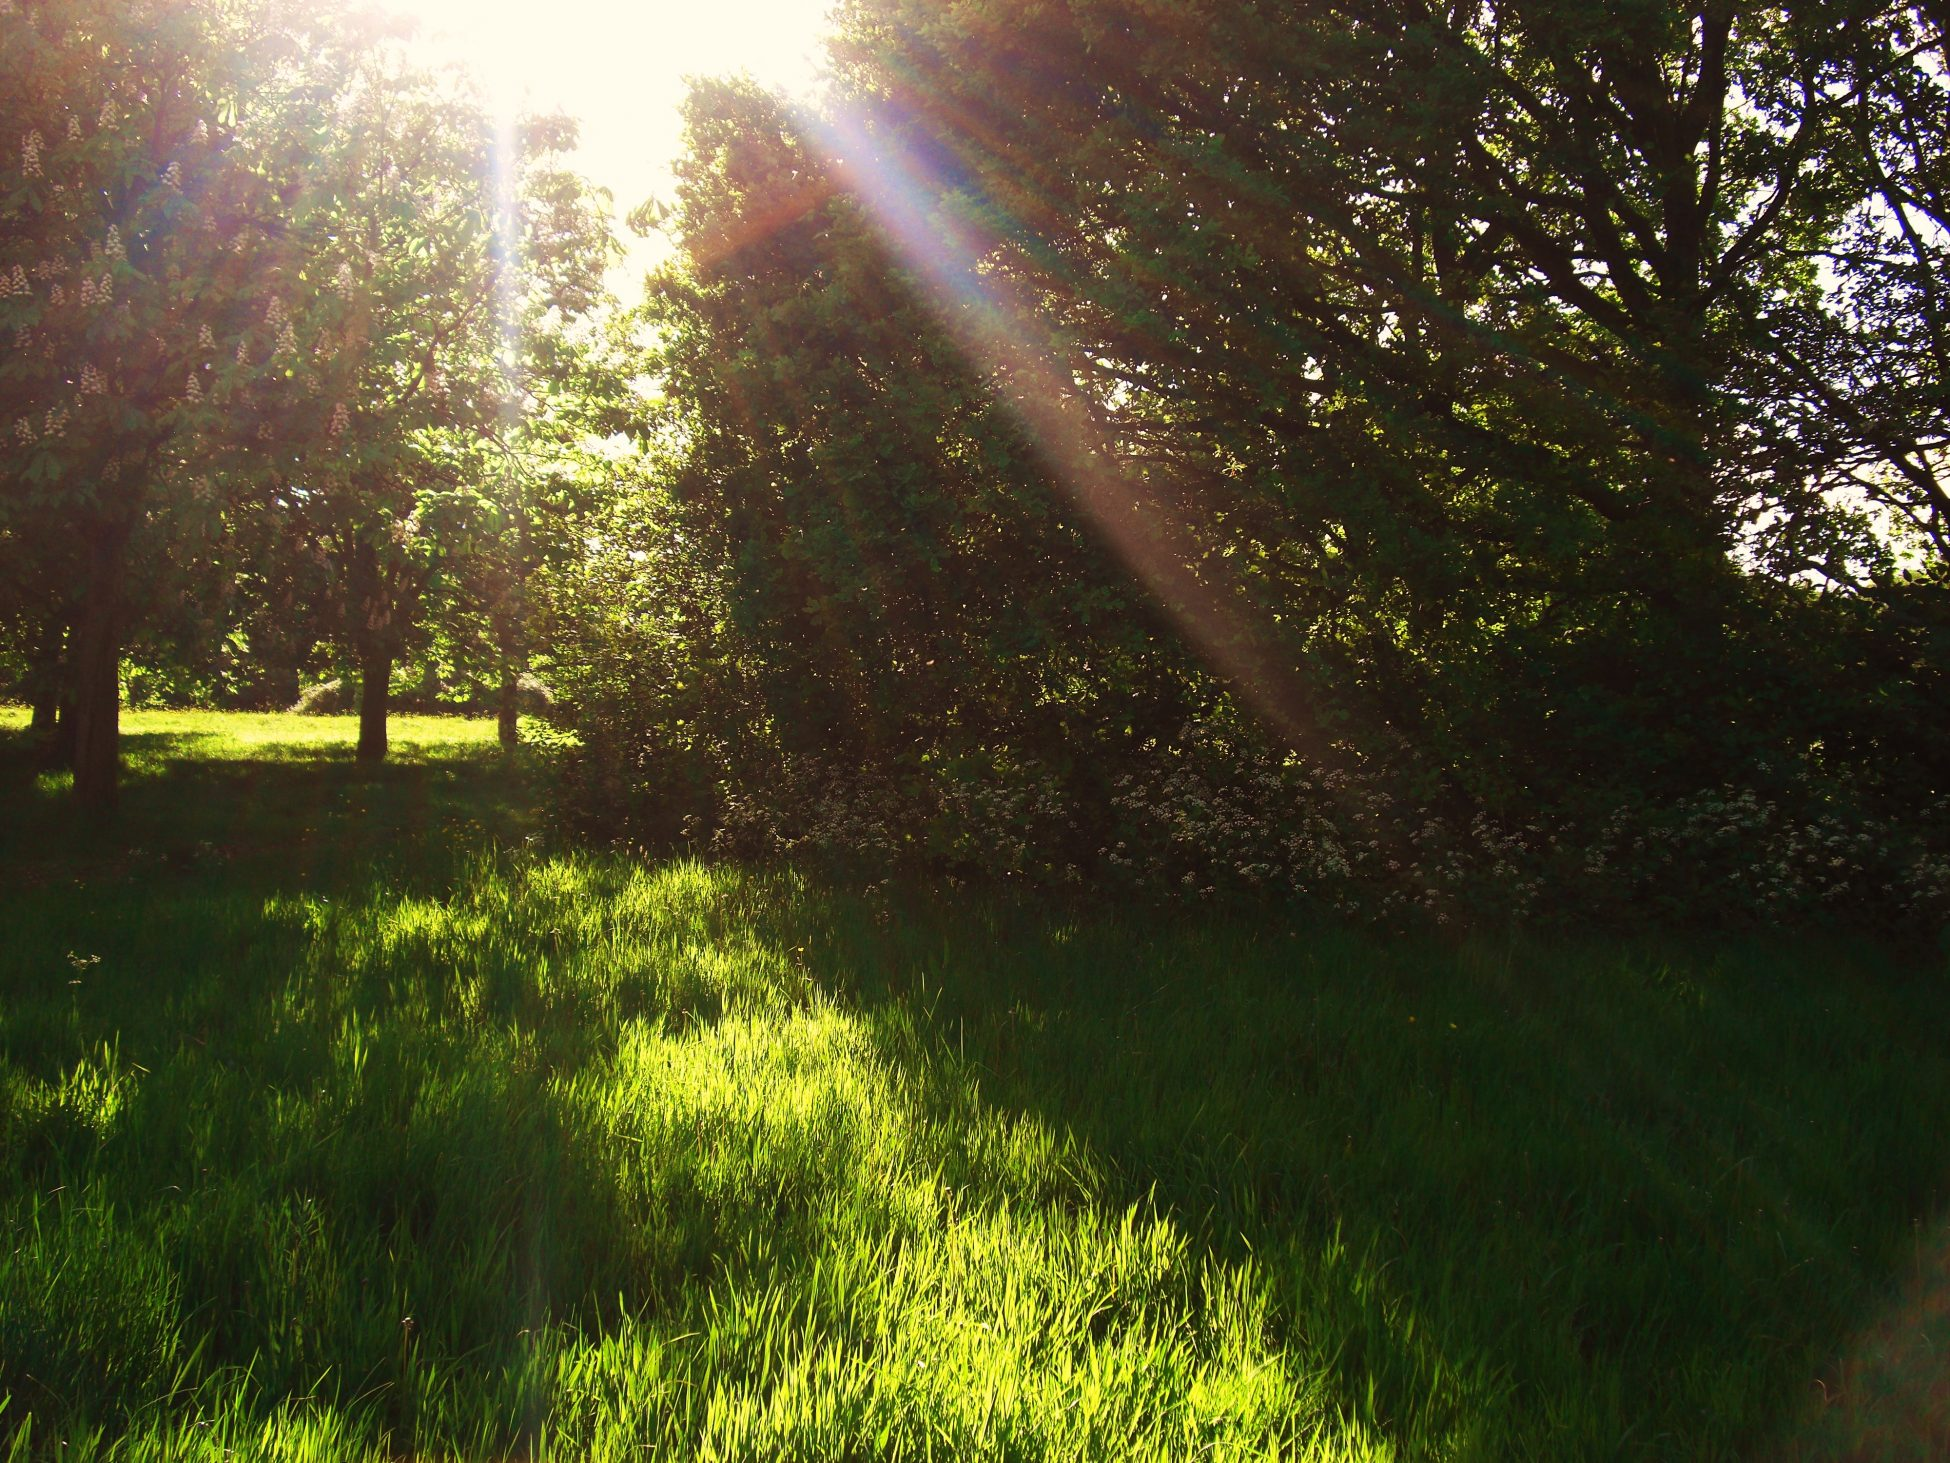 Photo of green grass and trees. The sun is beaming through the trees.